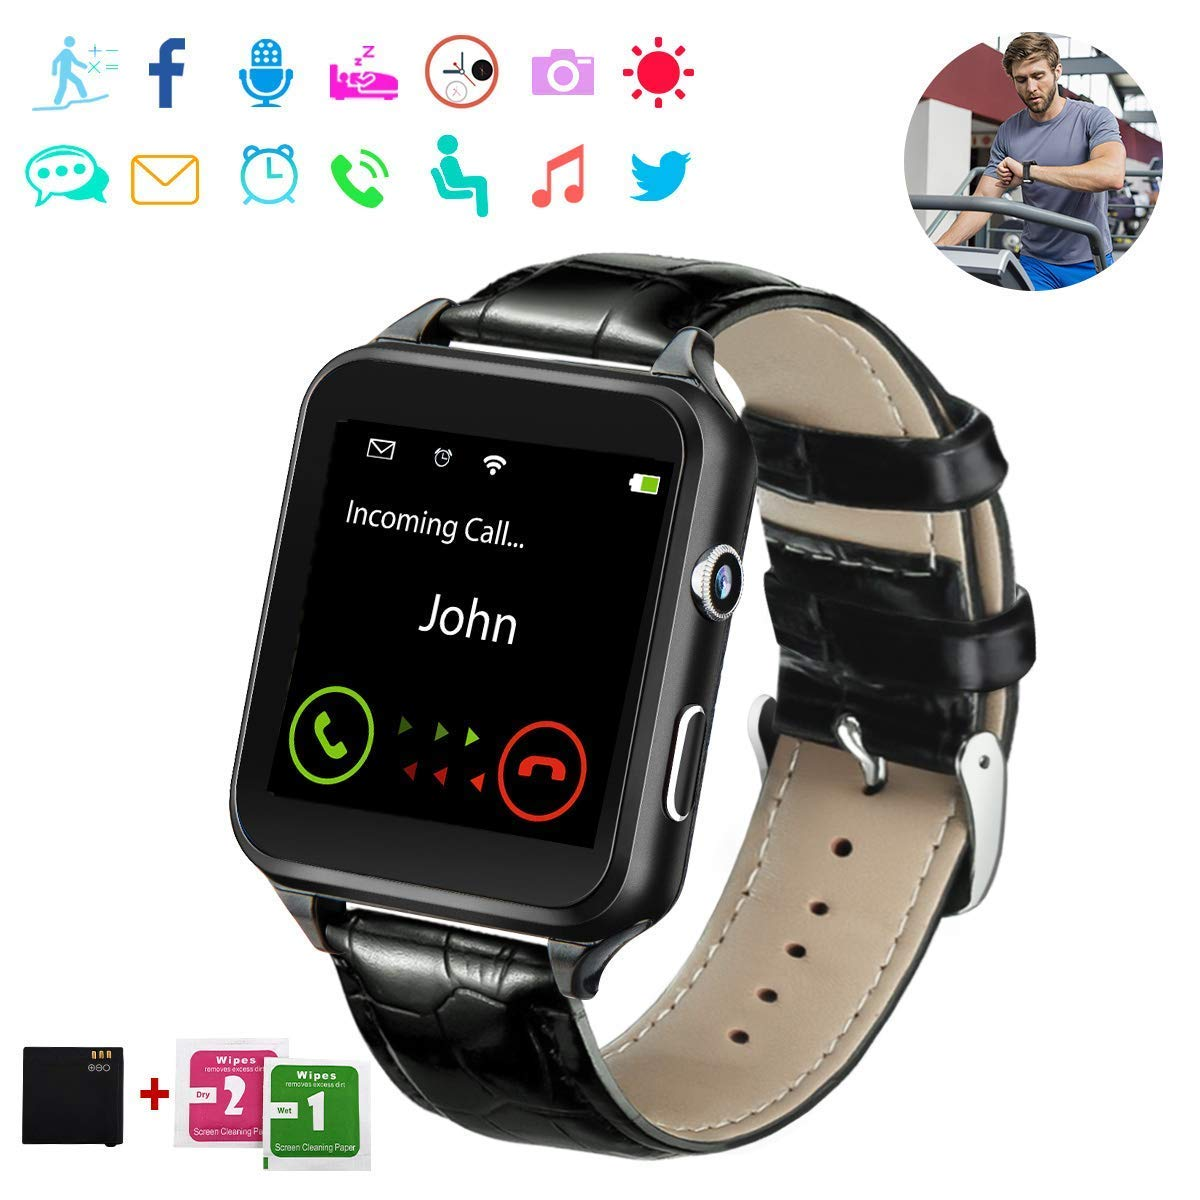 Smart Watch,Bluetooth Smartwatch Touchscreen with Camera, Smart Watches Waterproof Smart Wrist Watch Phone